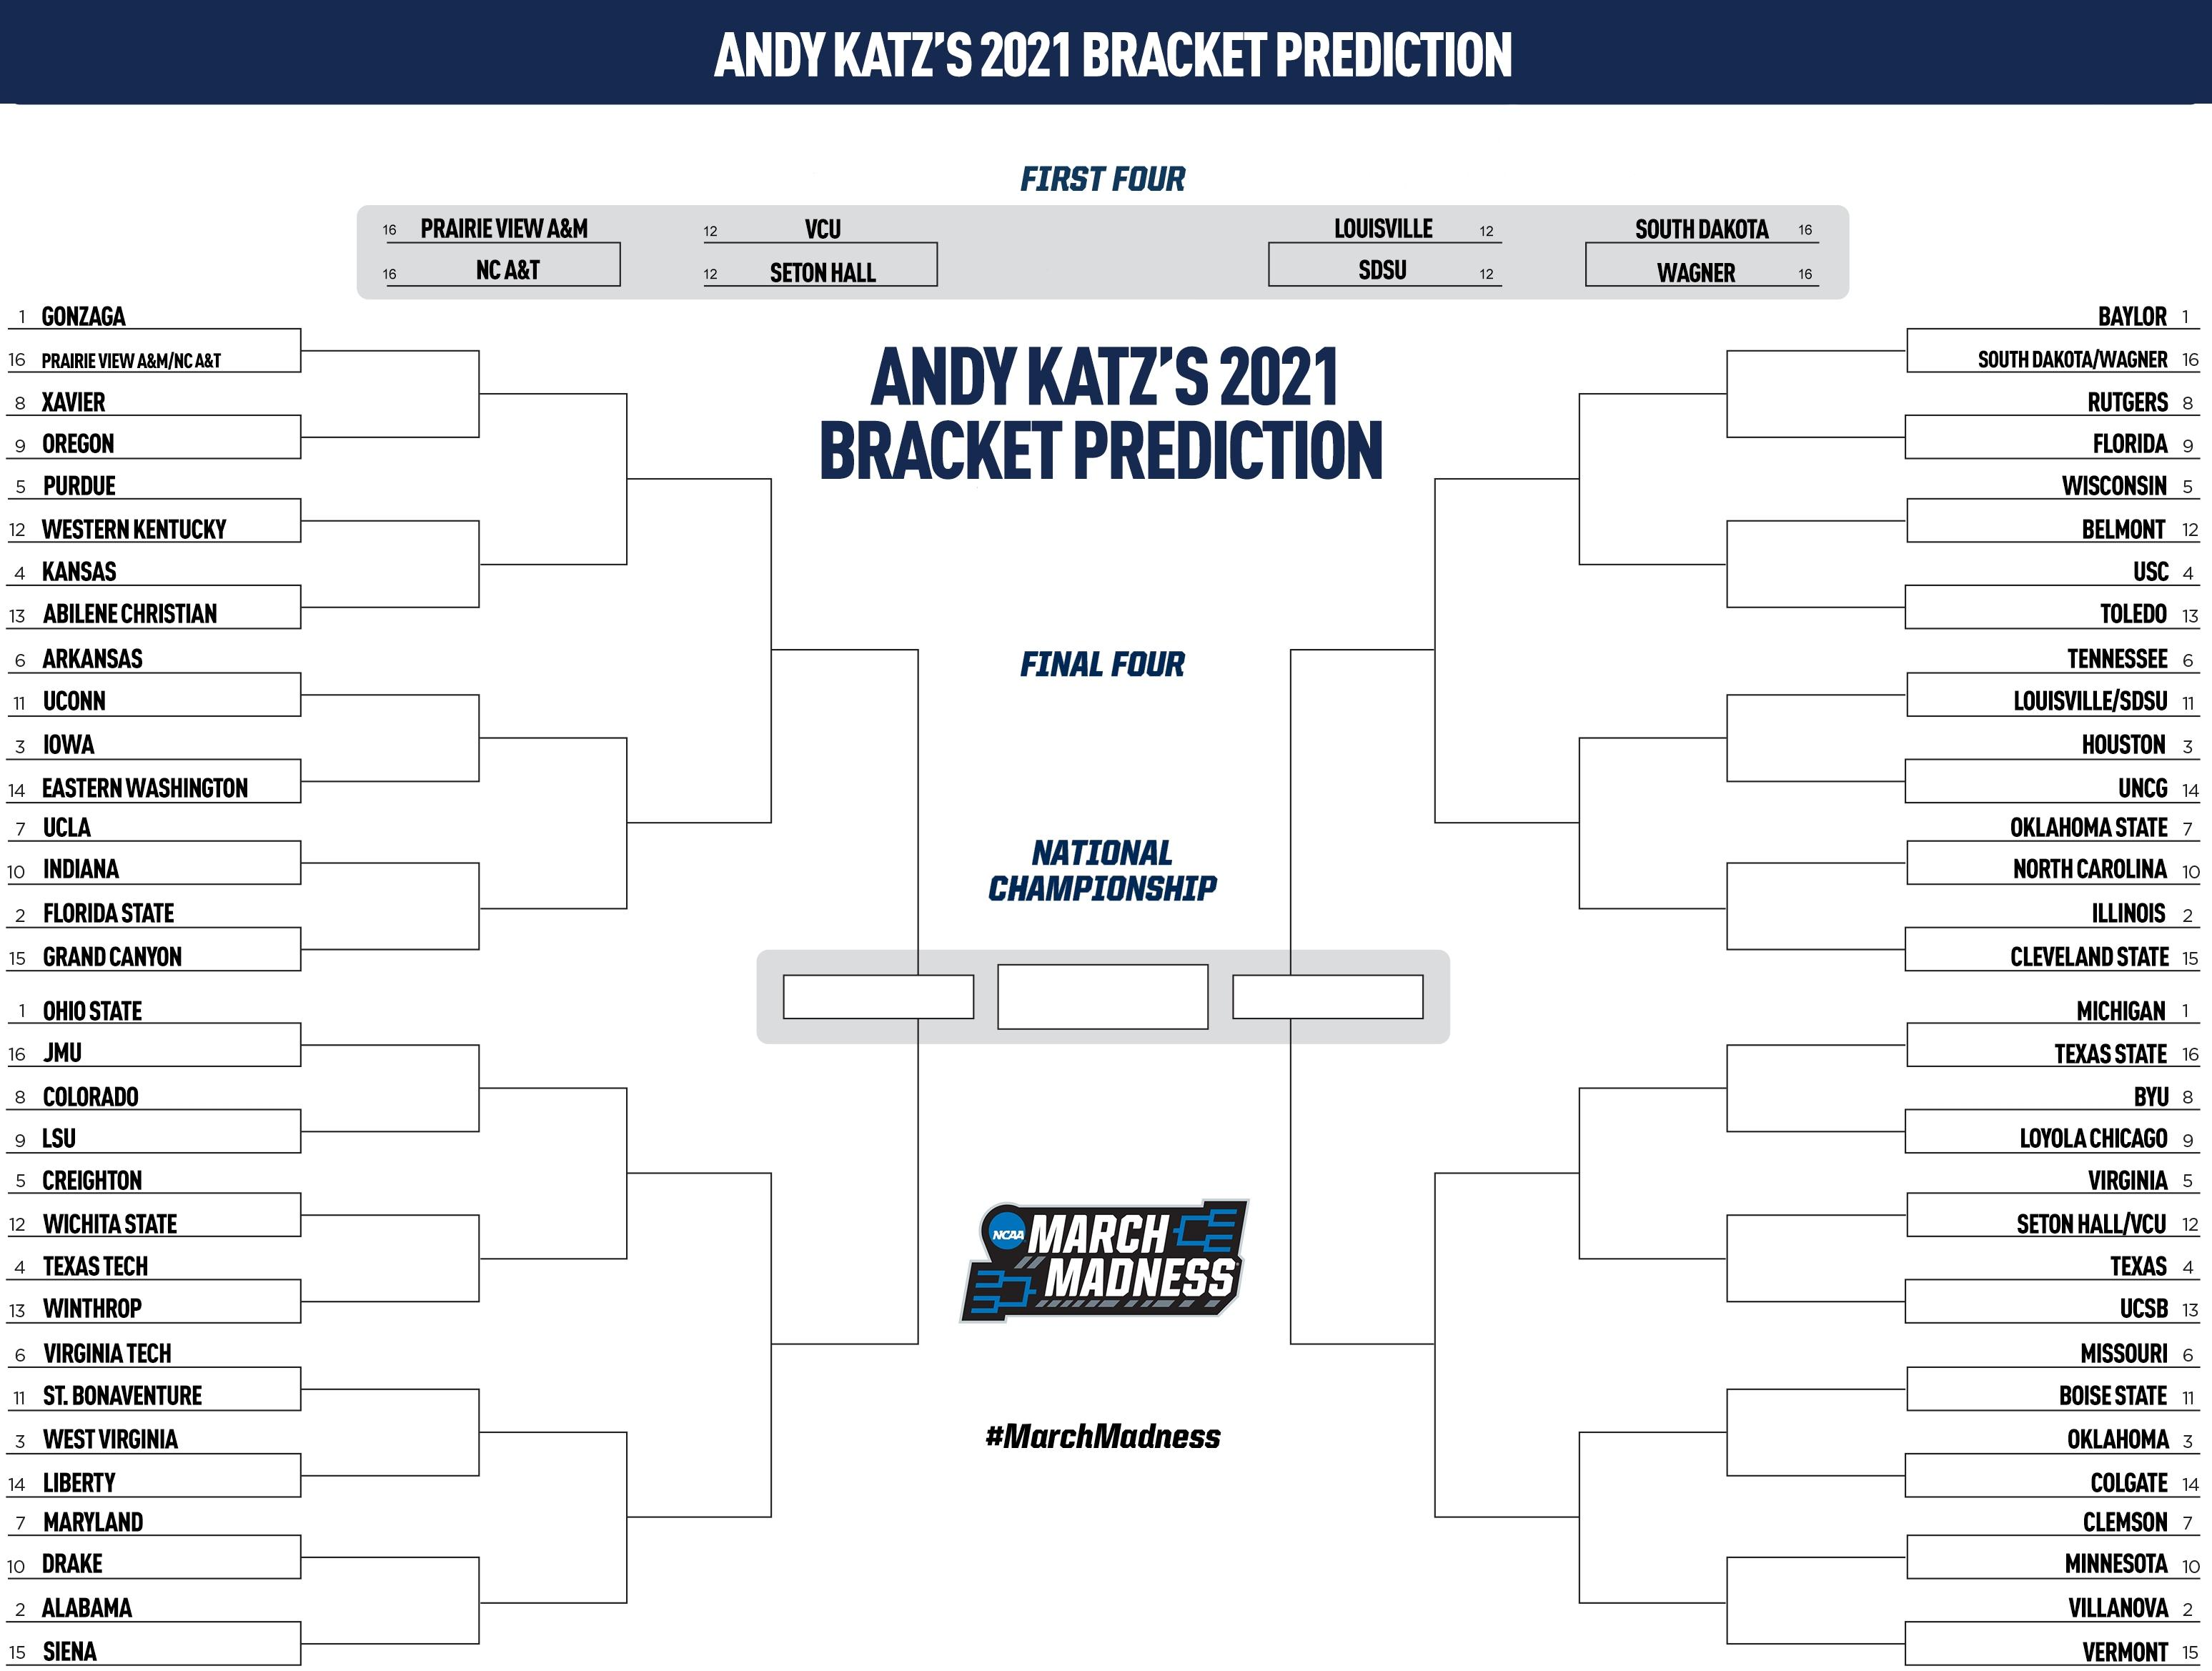 The 2021 NCAA bracket, predicted by Andy Katz based on games through Feb. 21.